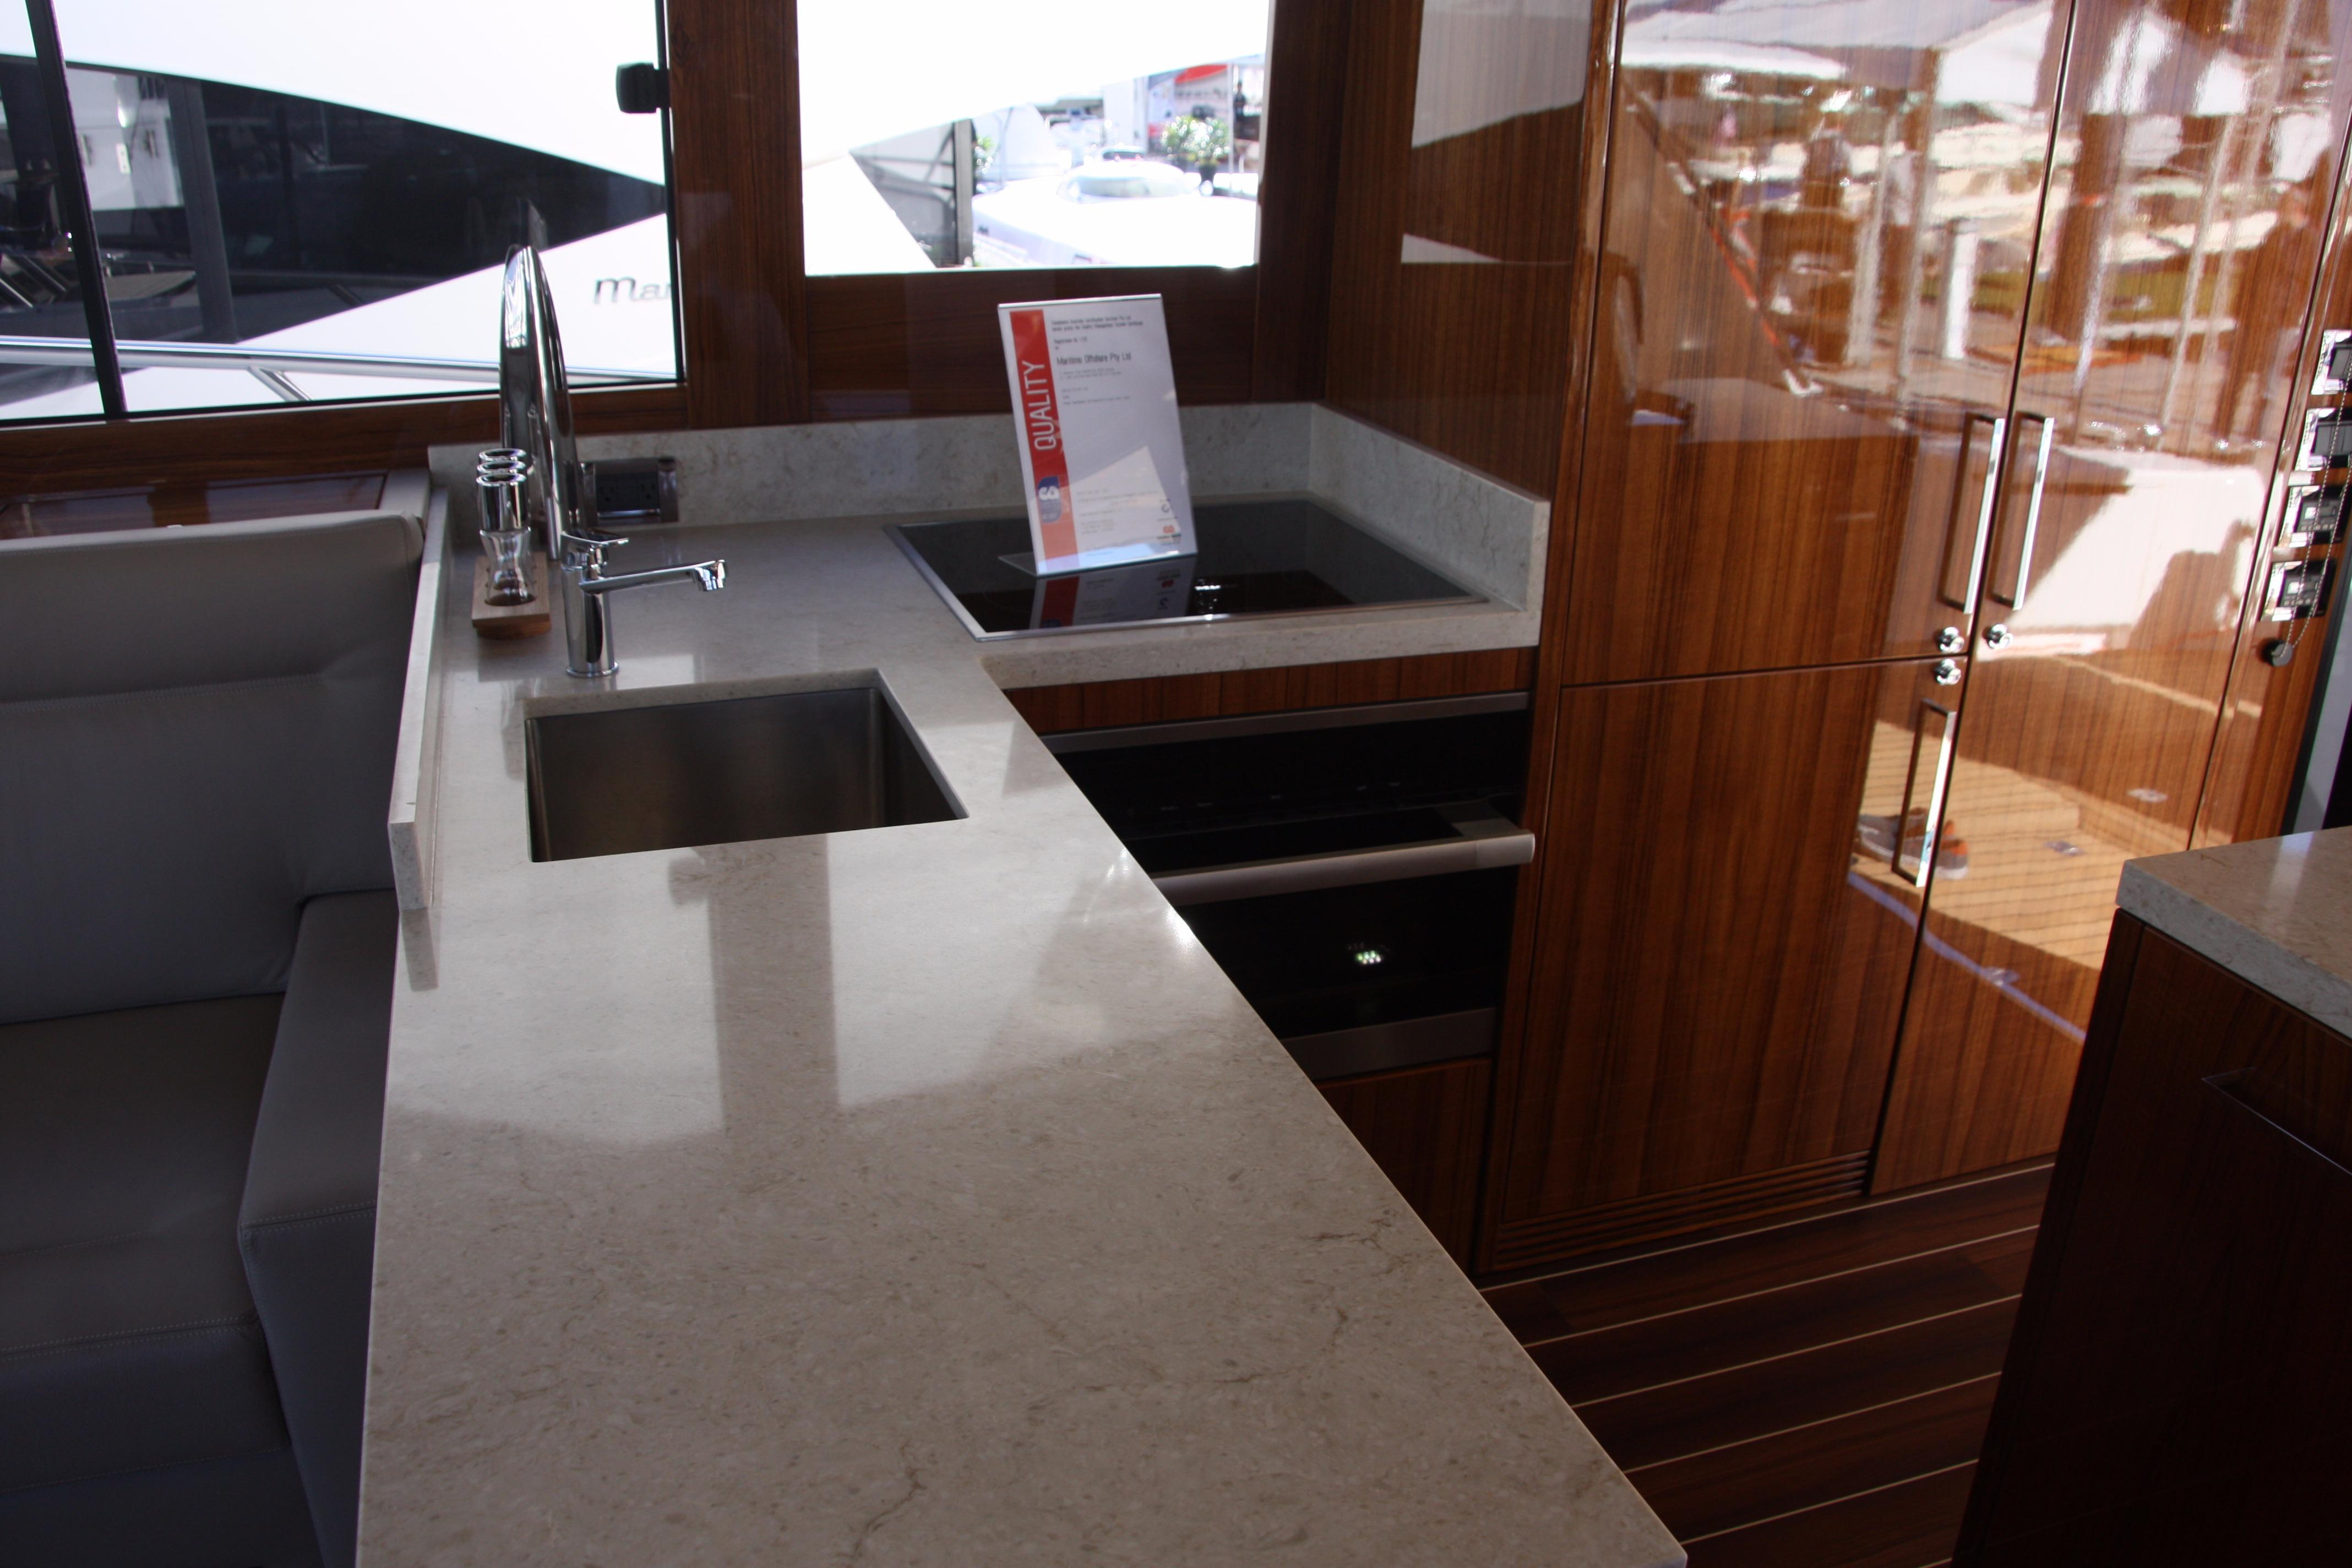 Galley Counter with Sink and Dual Burner Cooktop